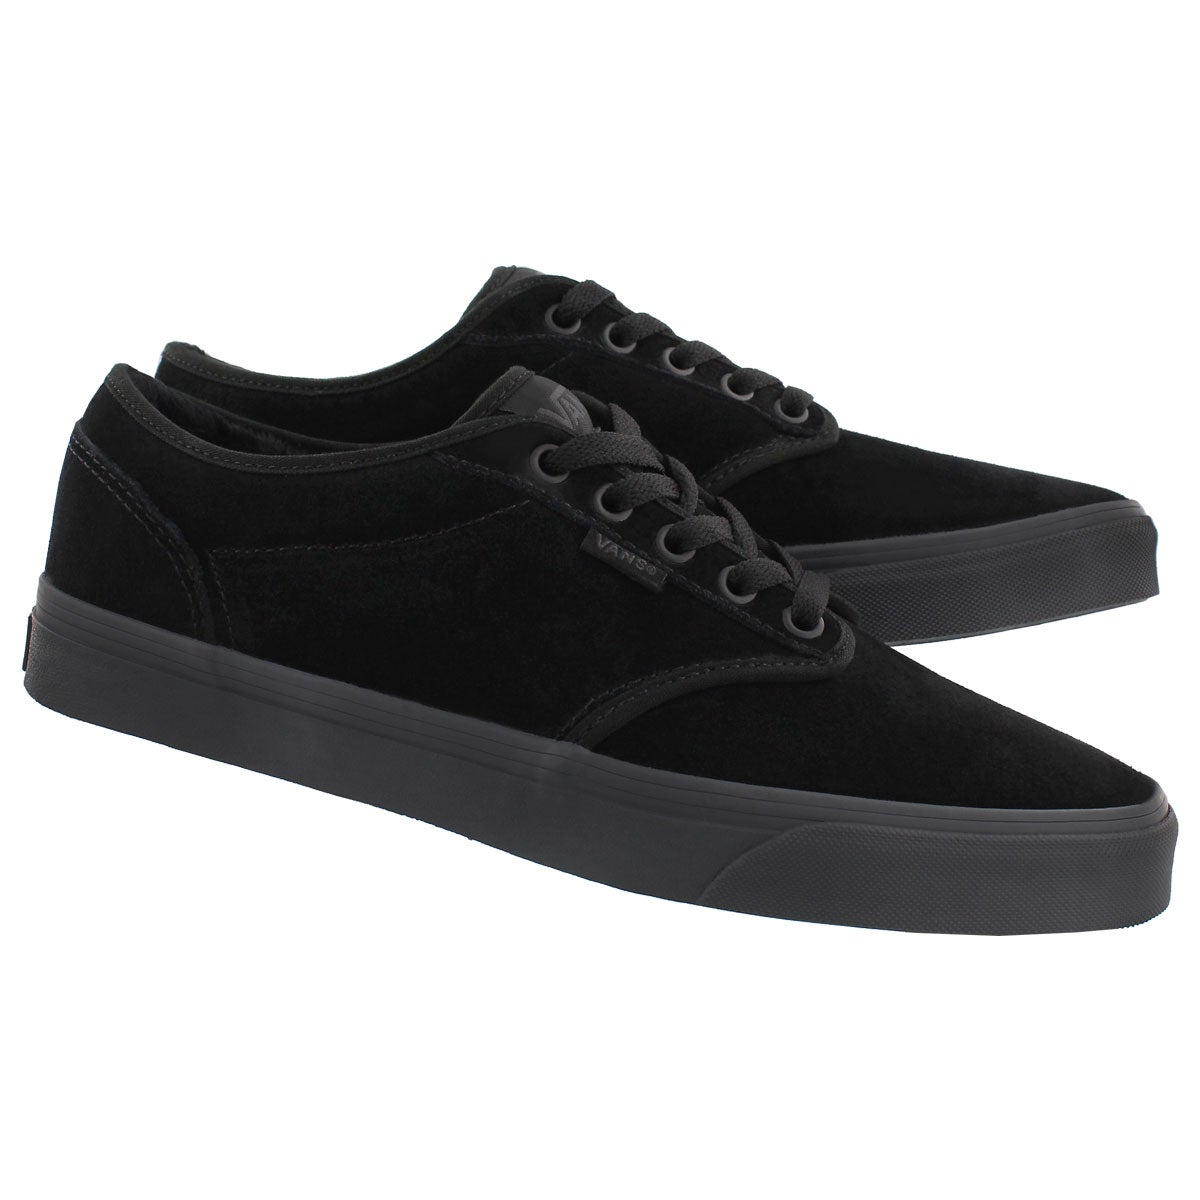 Mns Atwood MTE blk/gry laceup sneaker